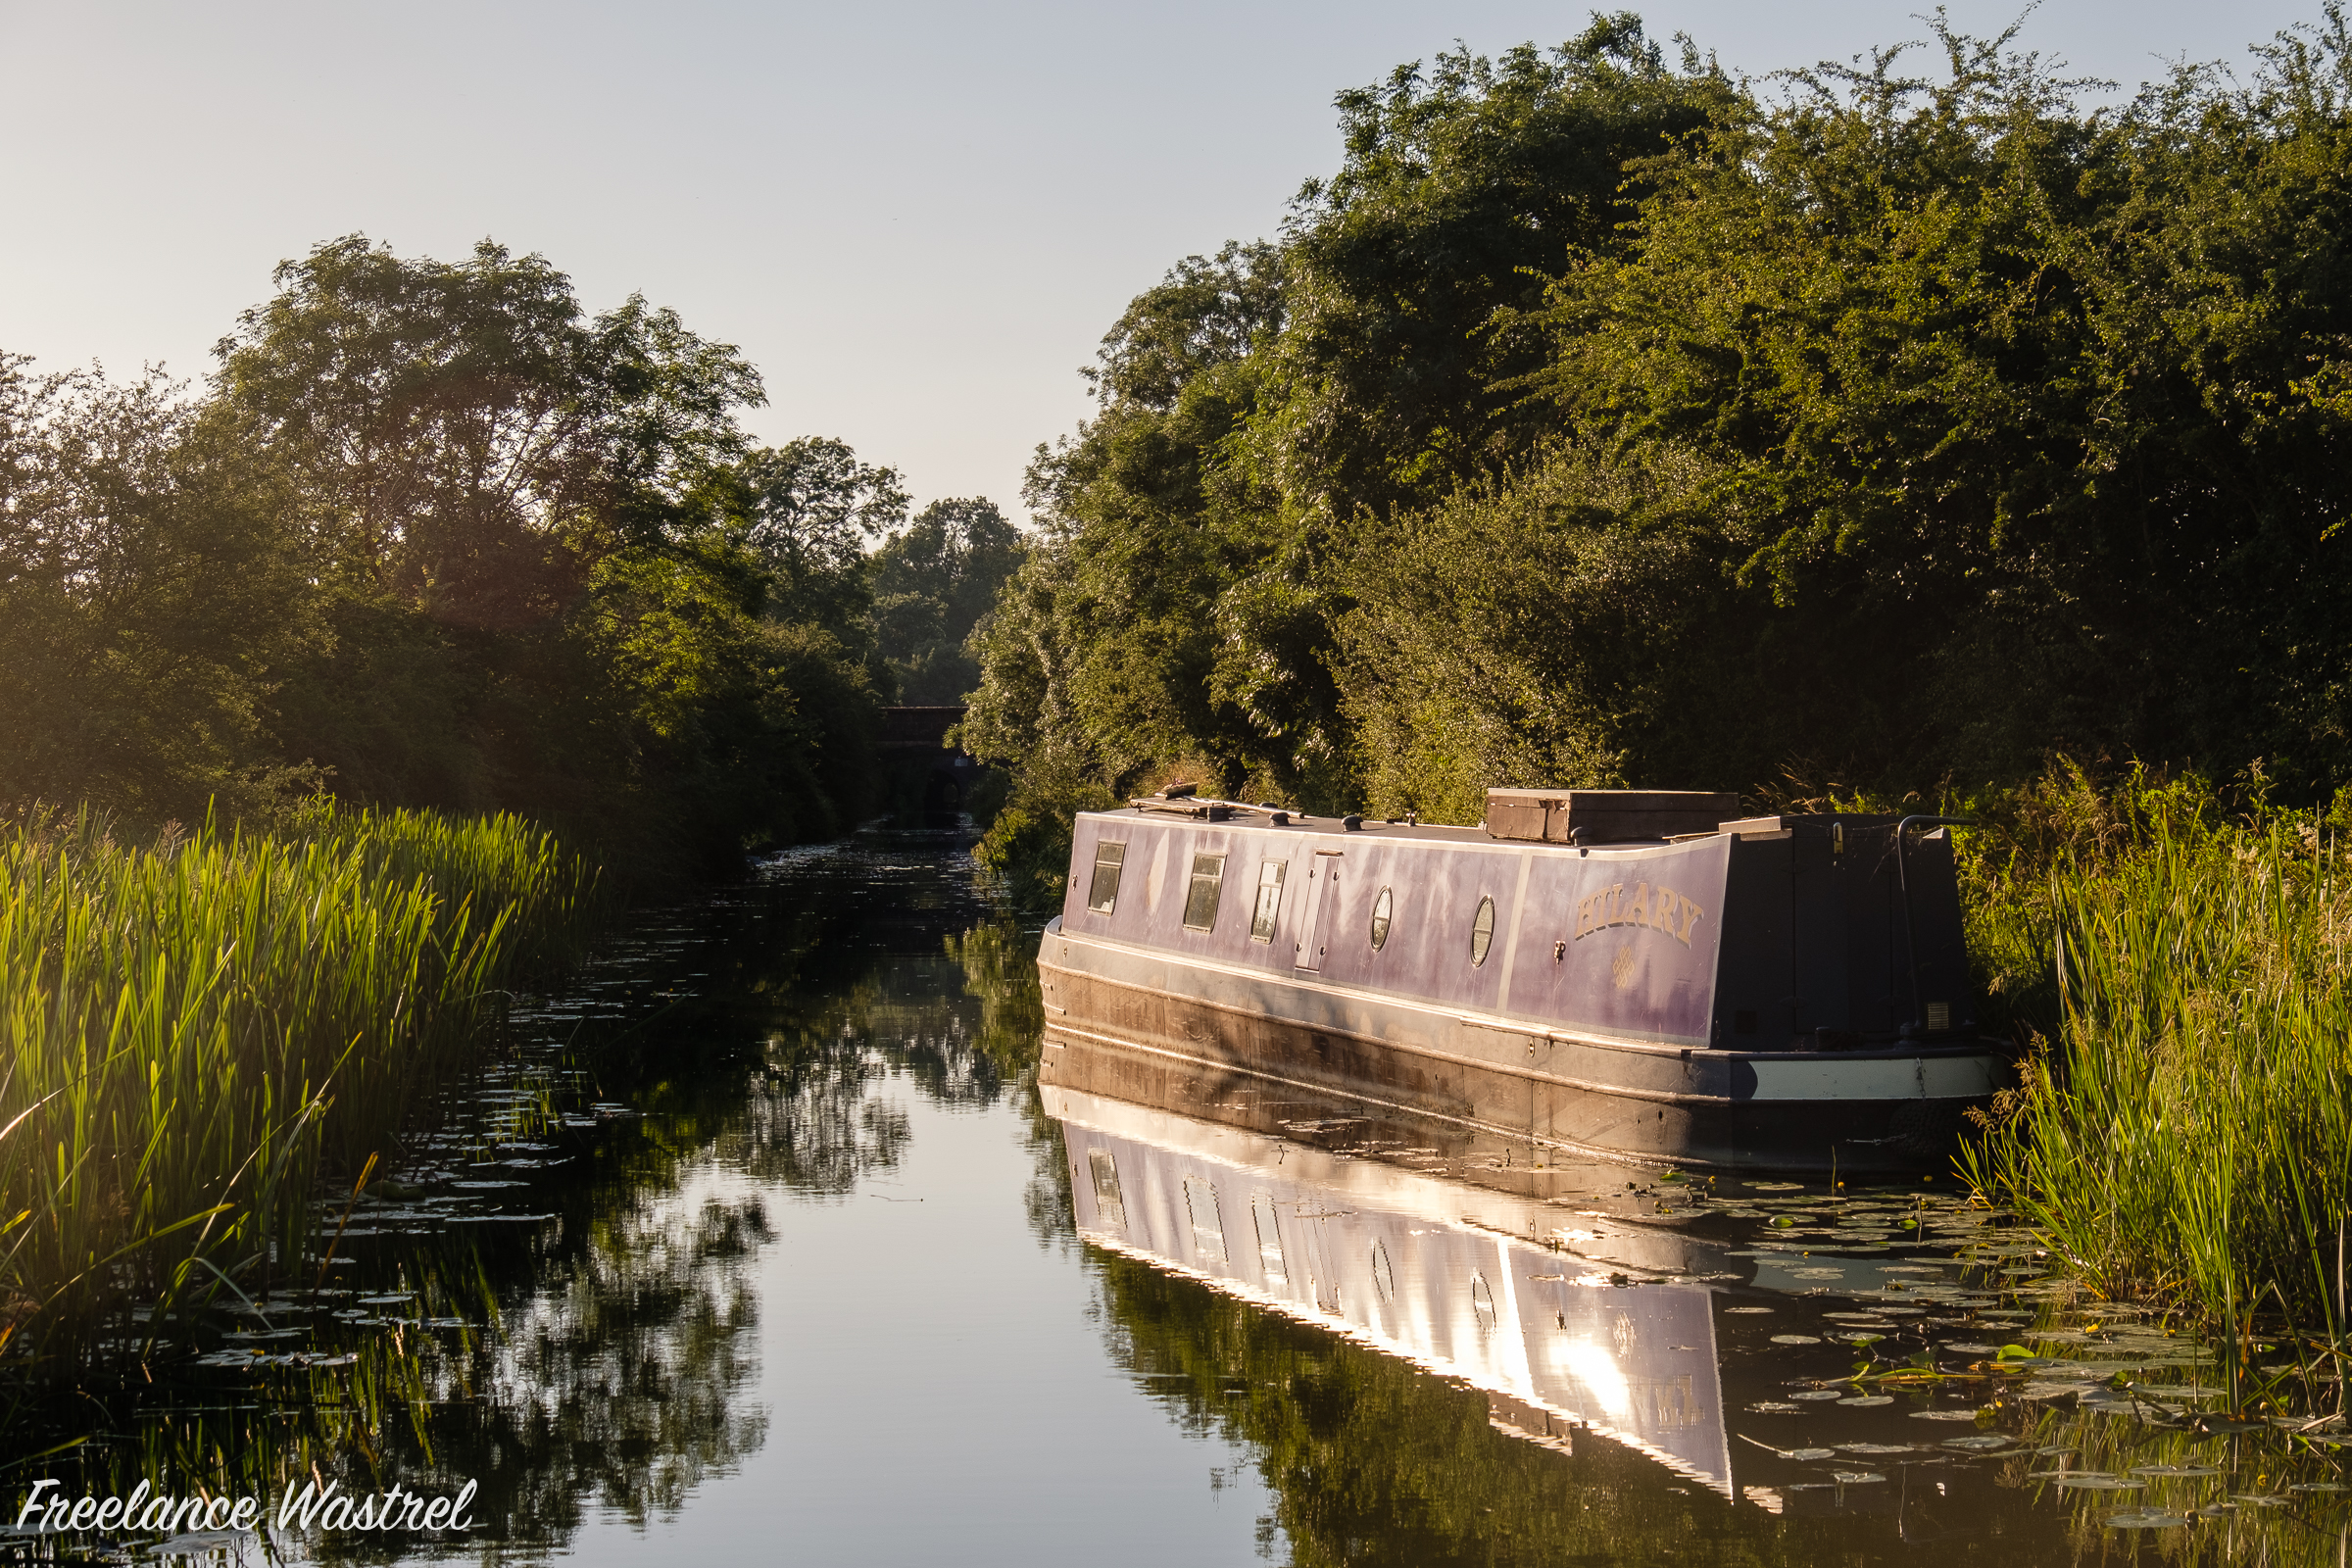 'HILARY' on the Grand Union Canal, July 2021